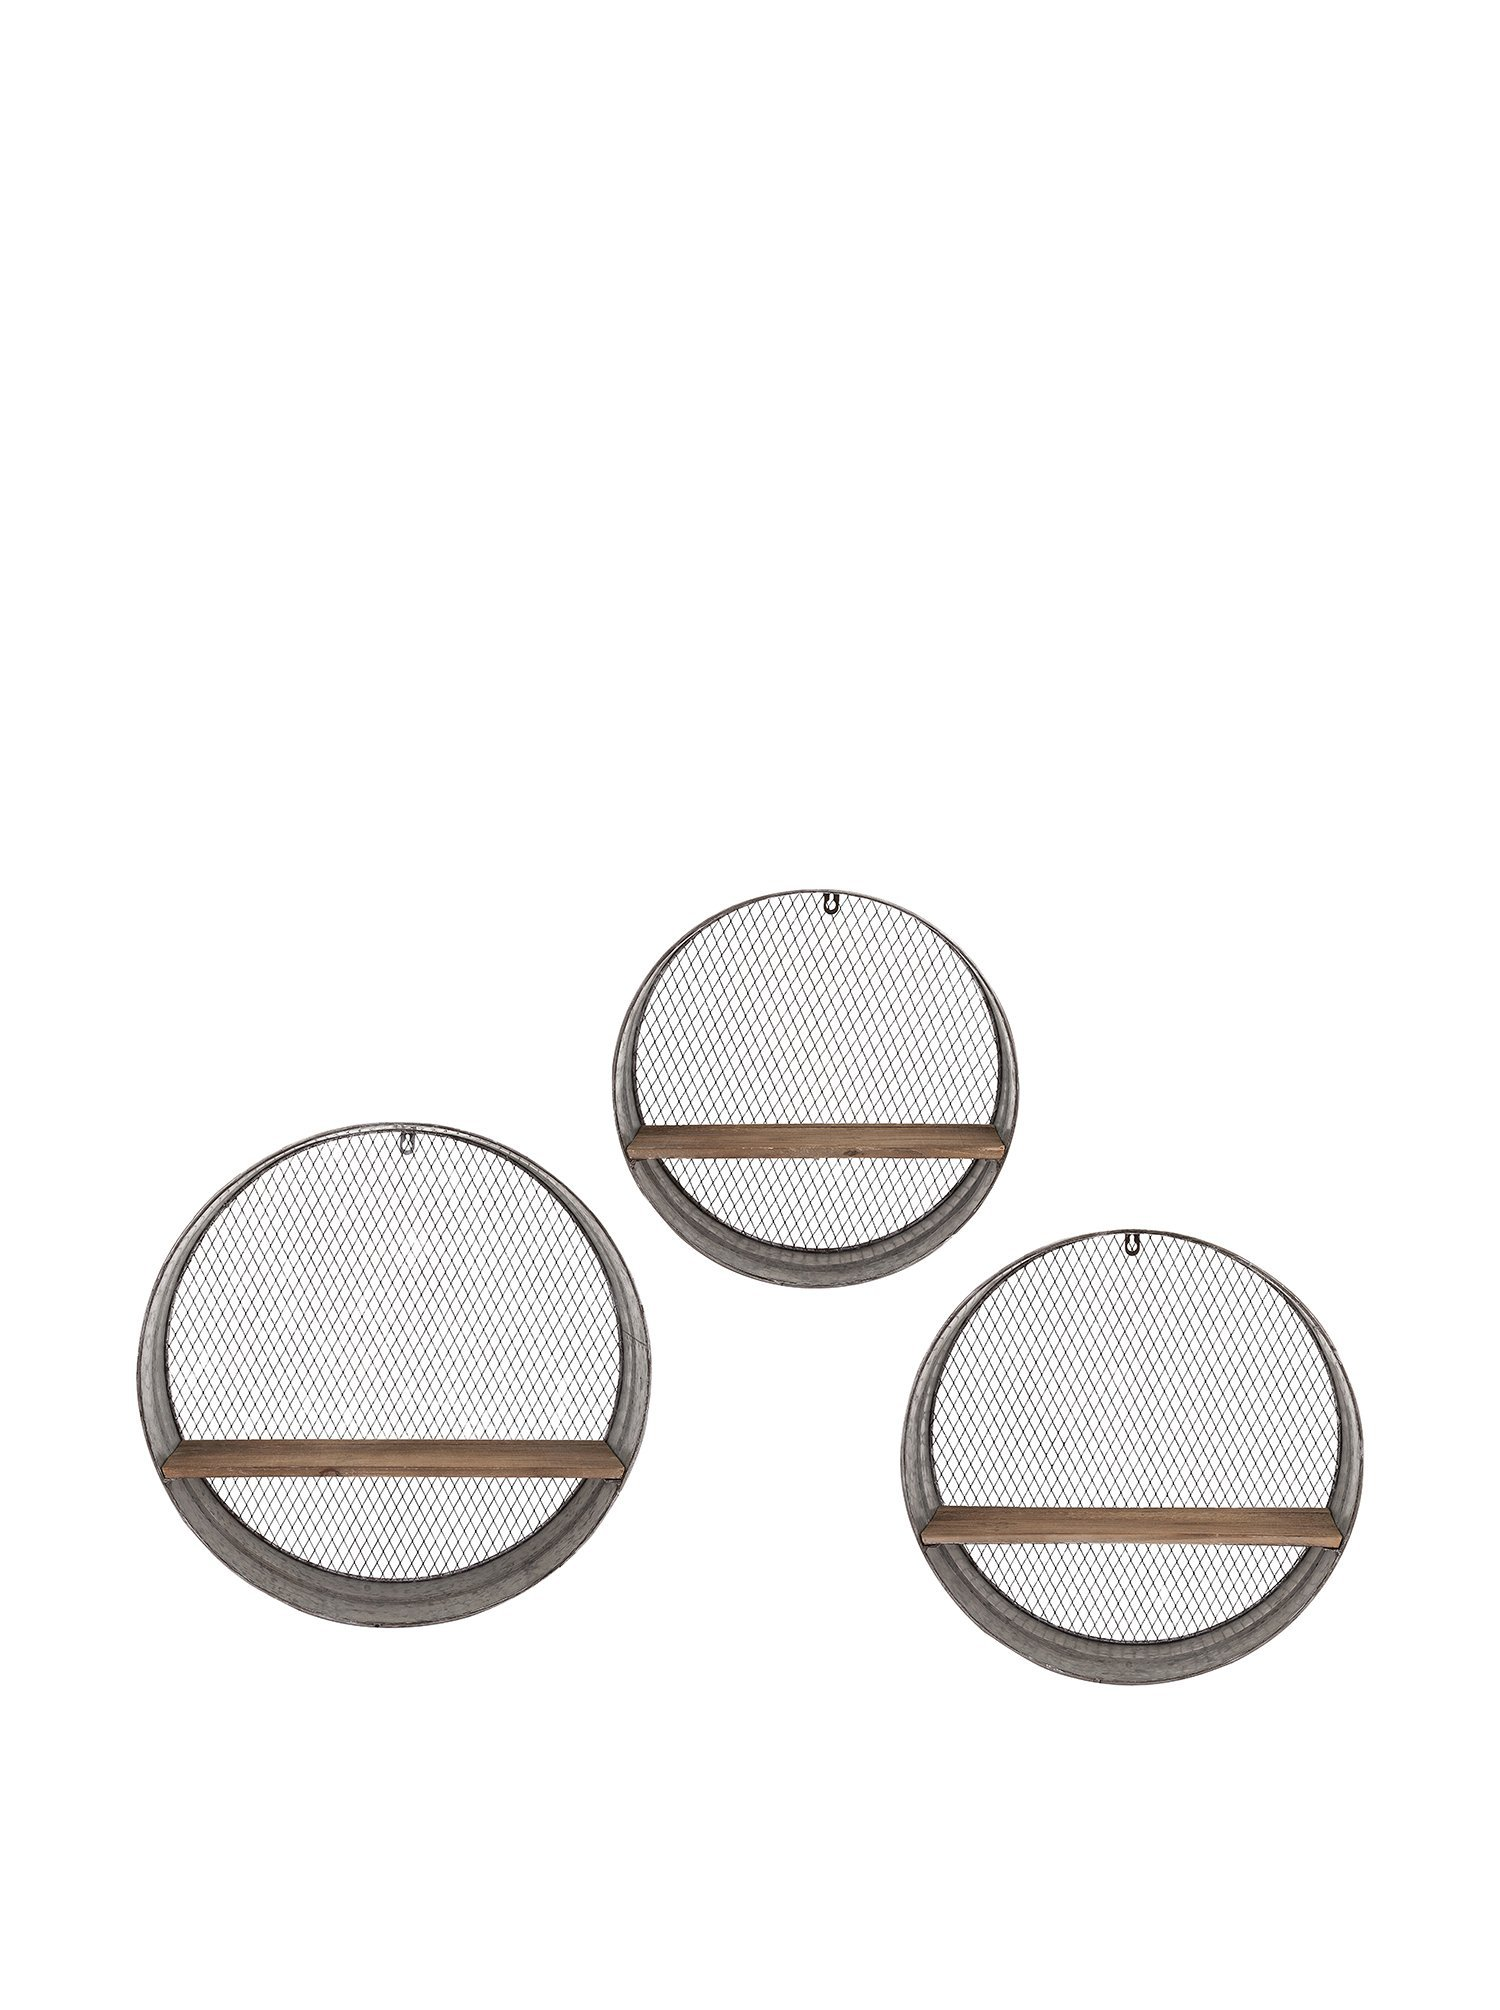 IMAX 65320-3 Laurel Round Wall Shelves, Set of 3